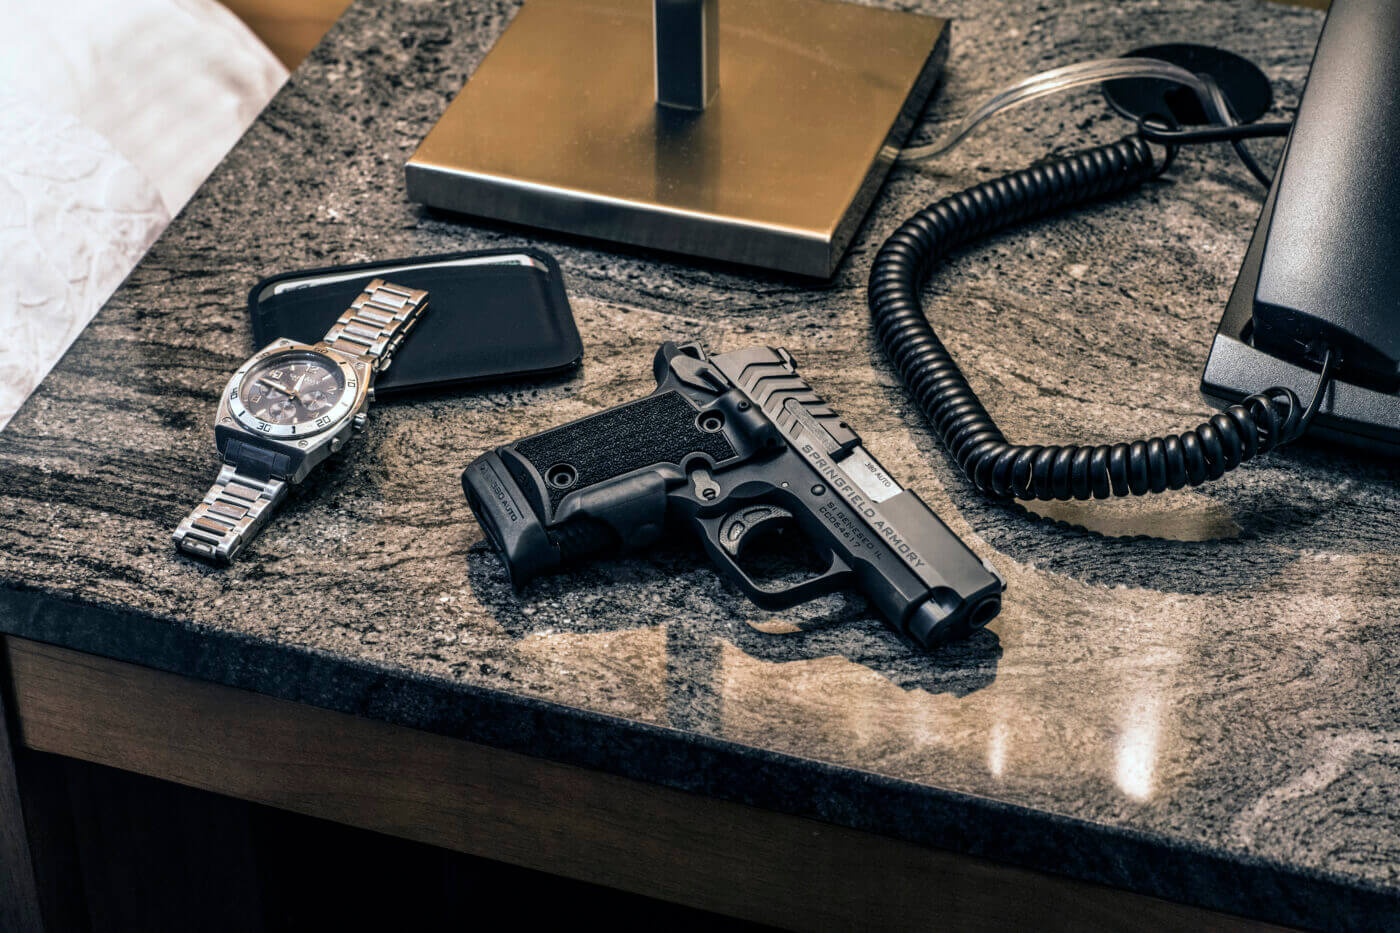 A Springfield 911, a wallet, and a watch on a nightstand